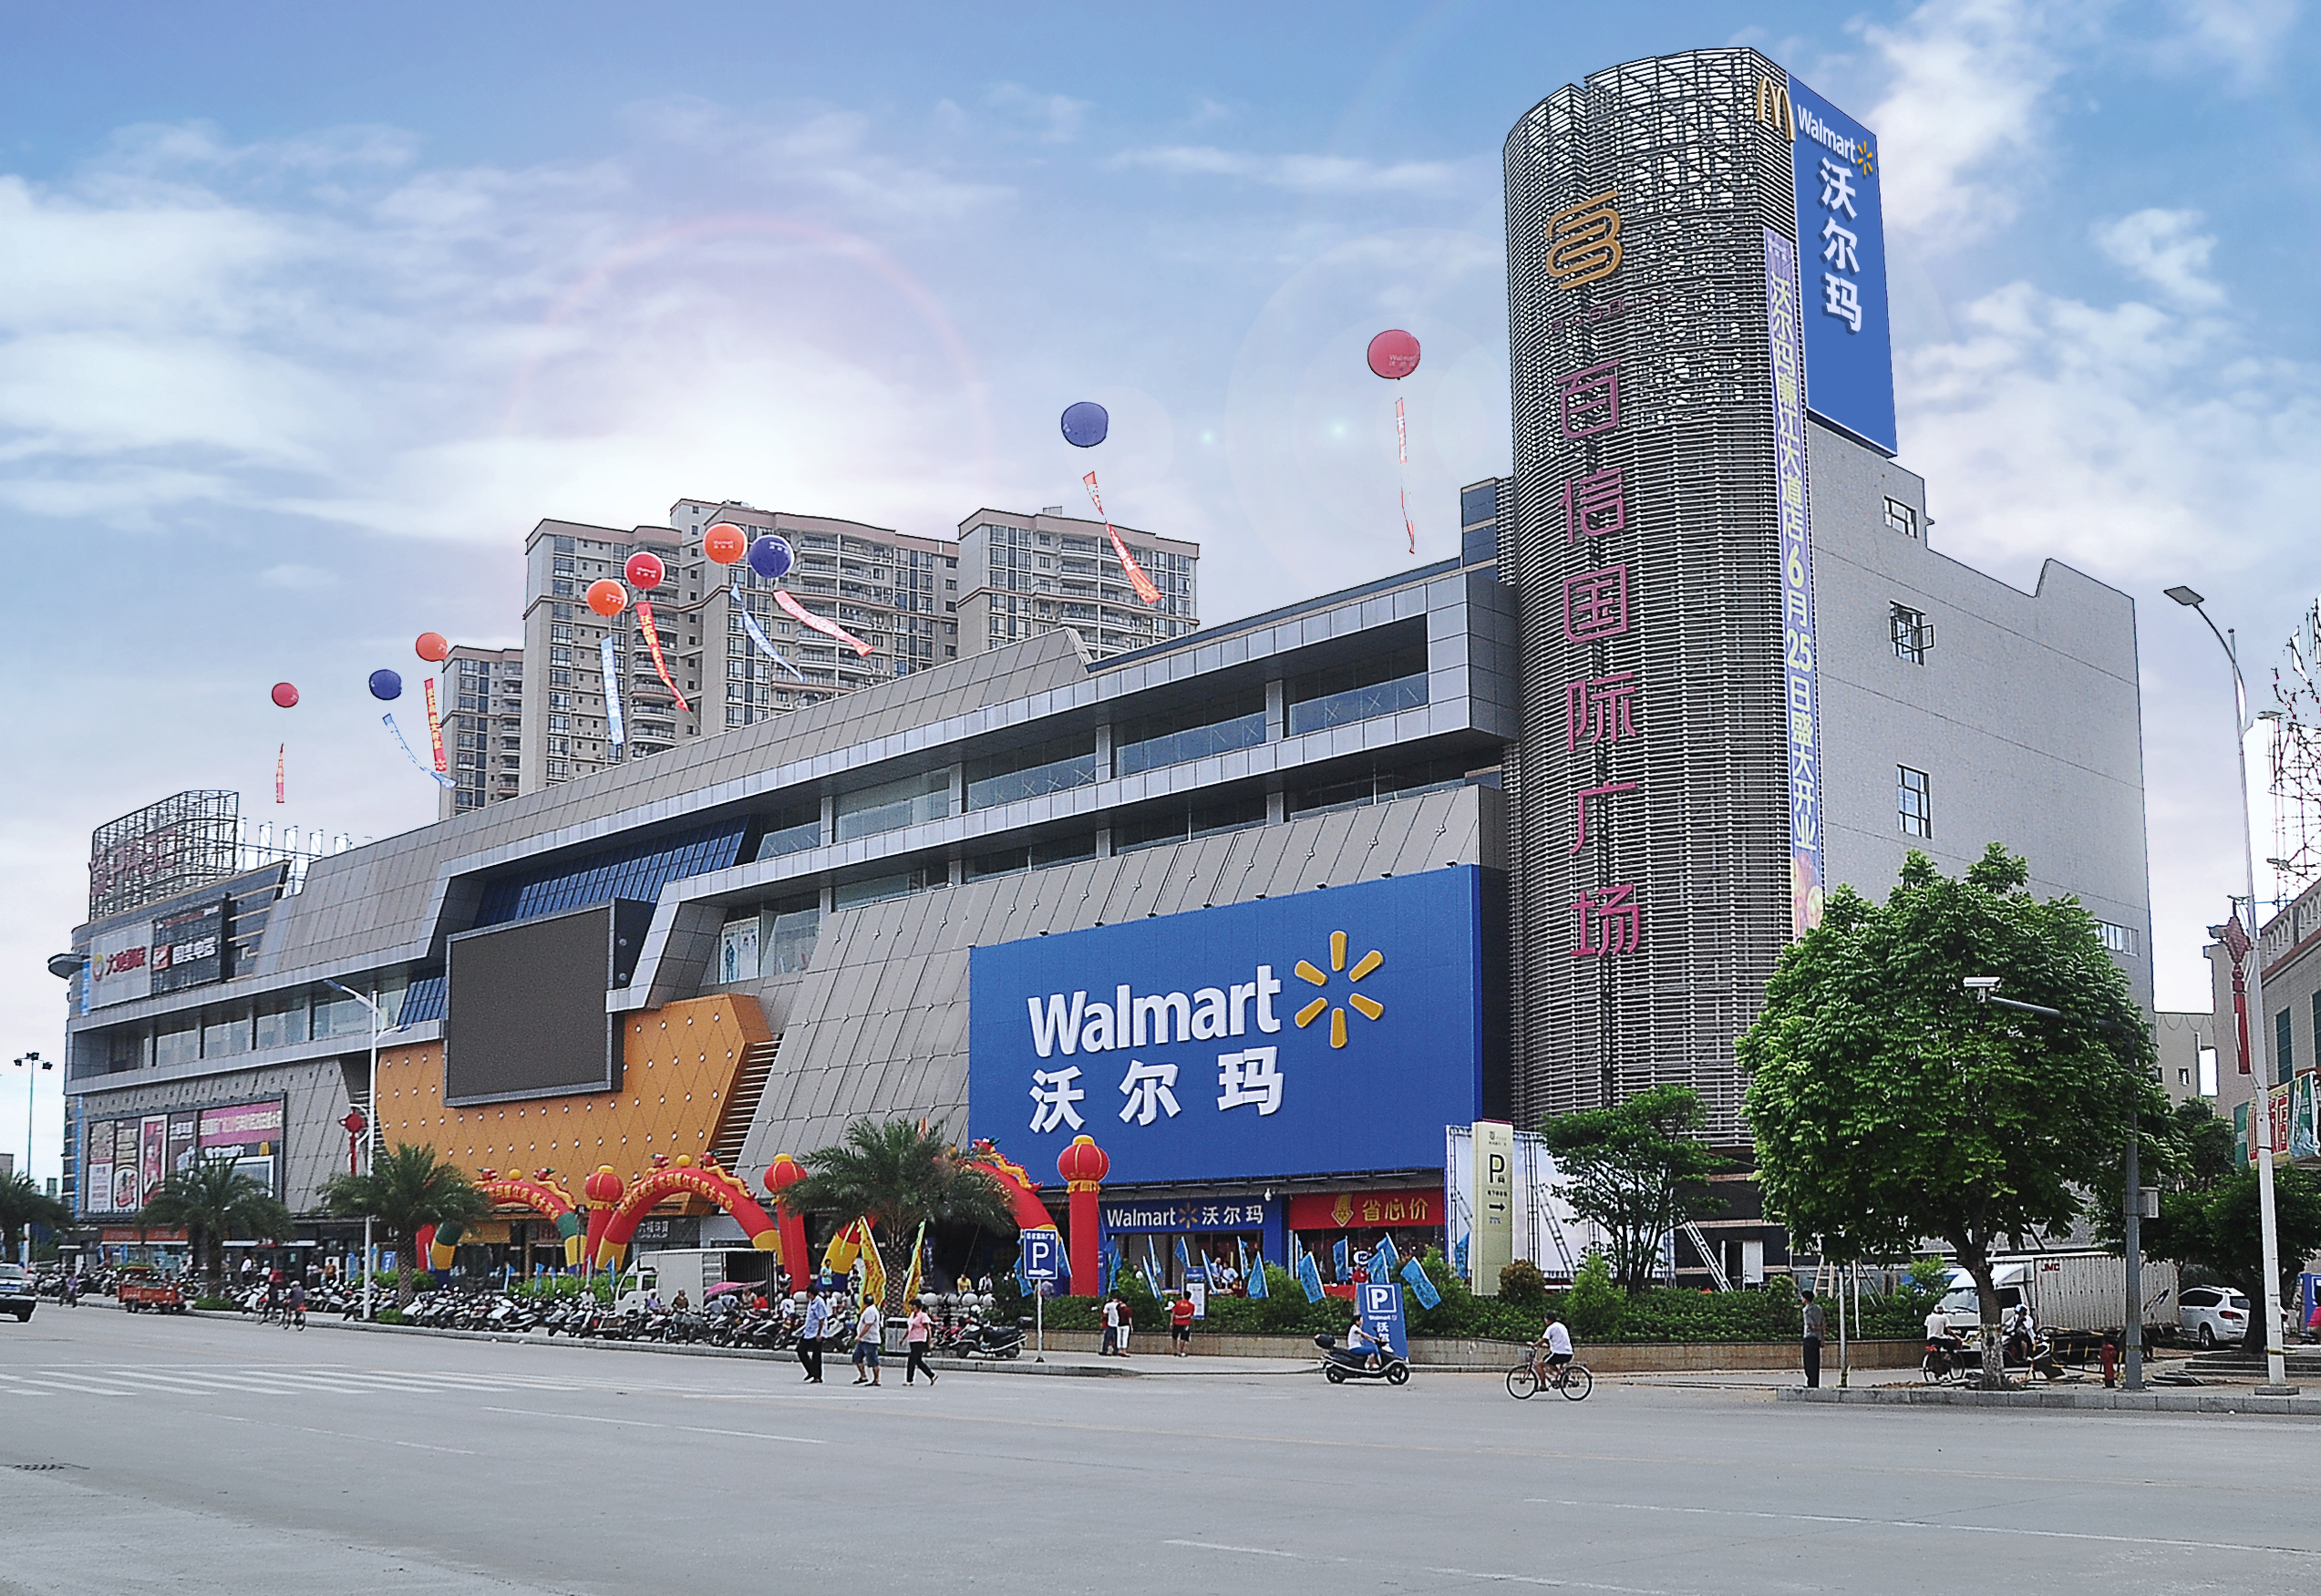 A Walmart in China